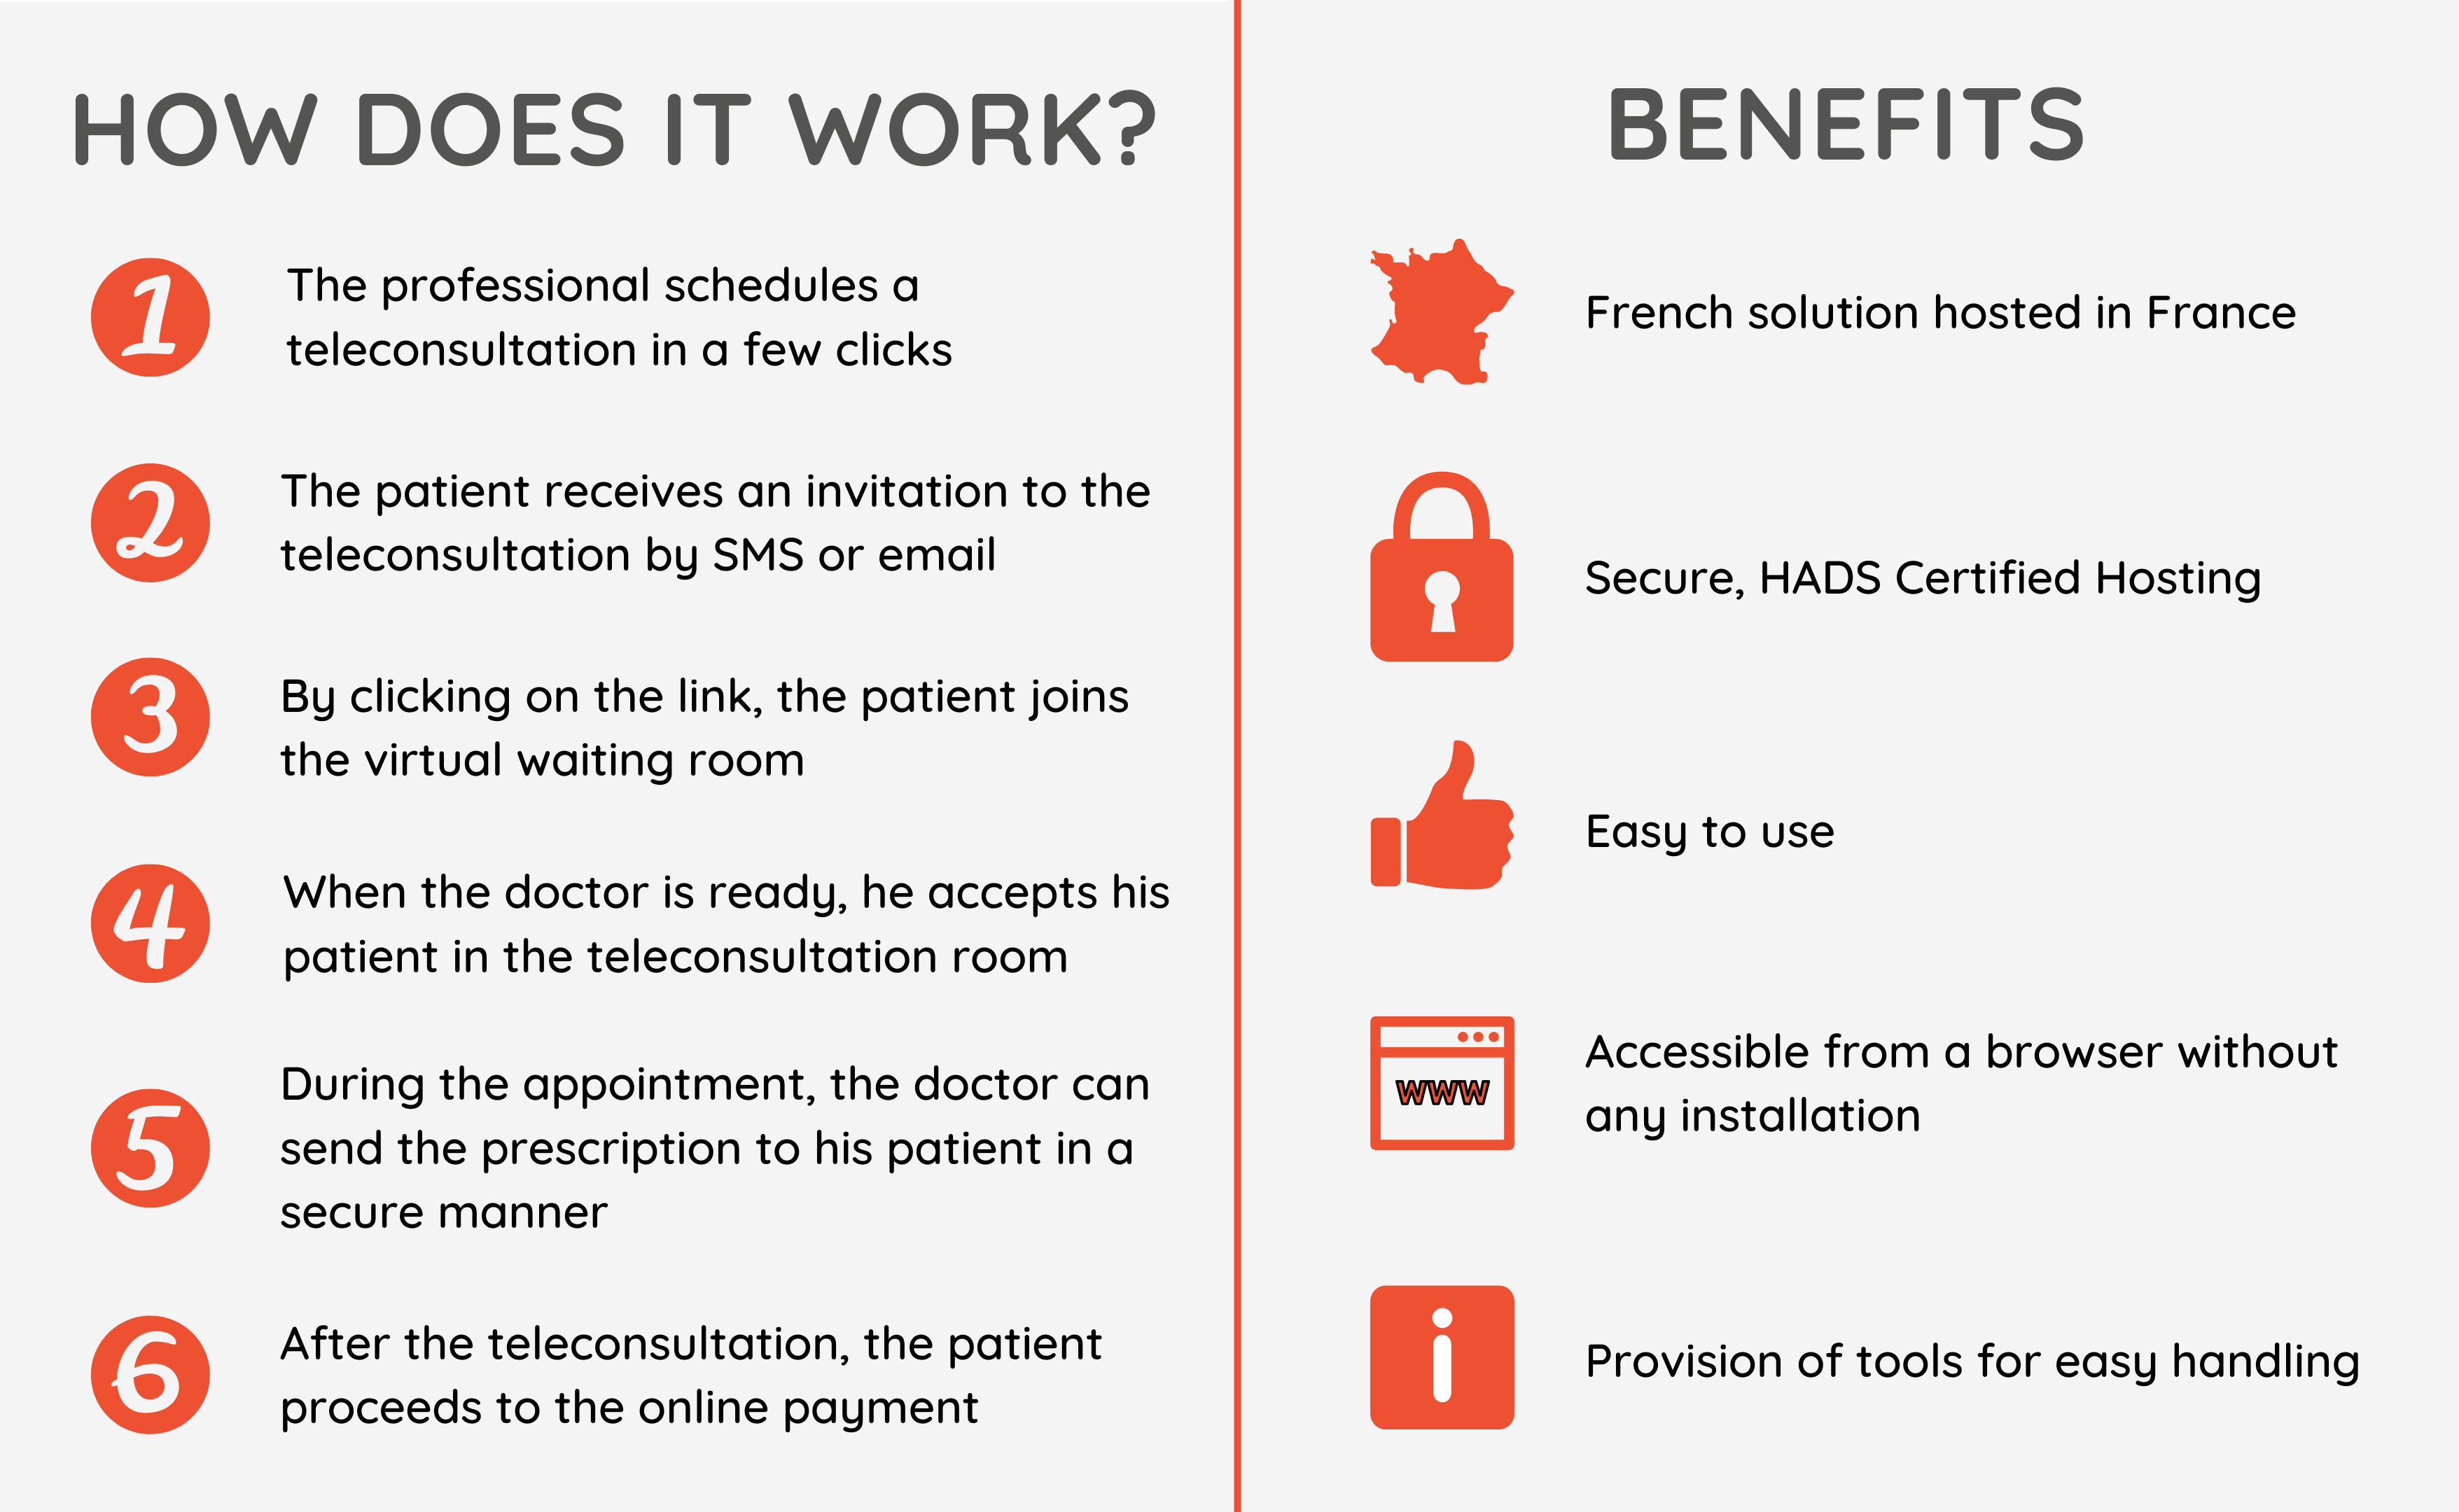 Teleconsultation functioning and benefits